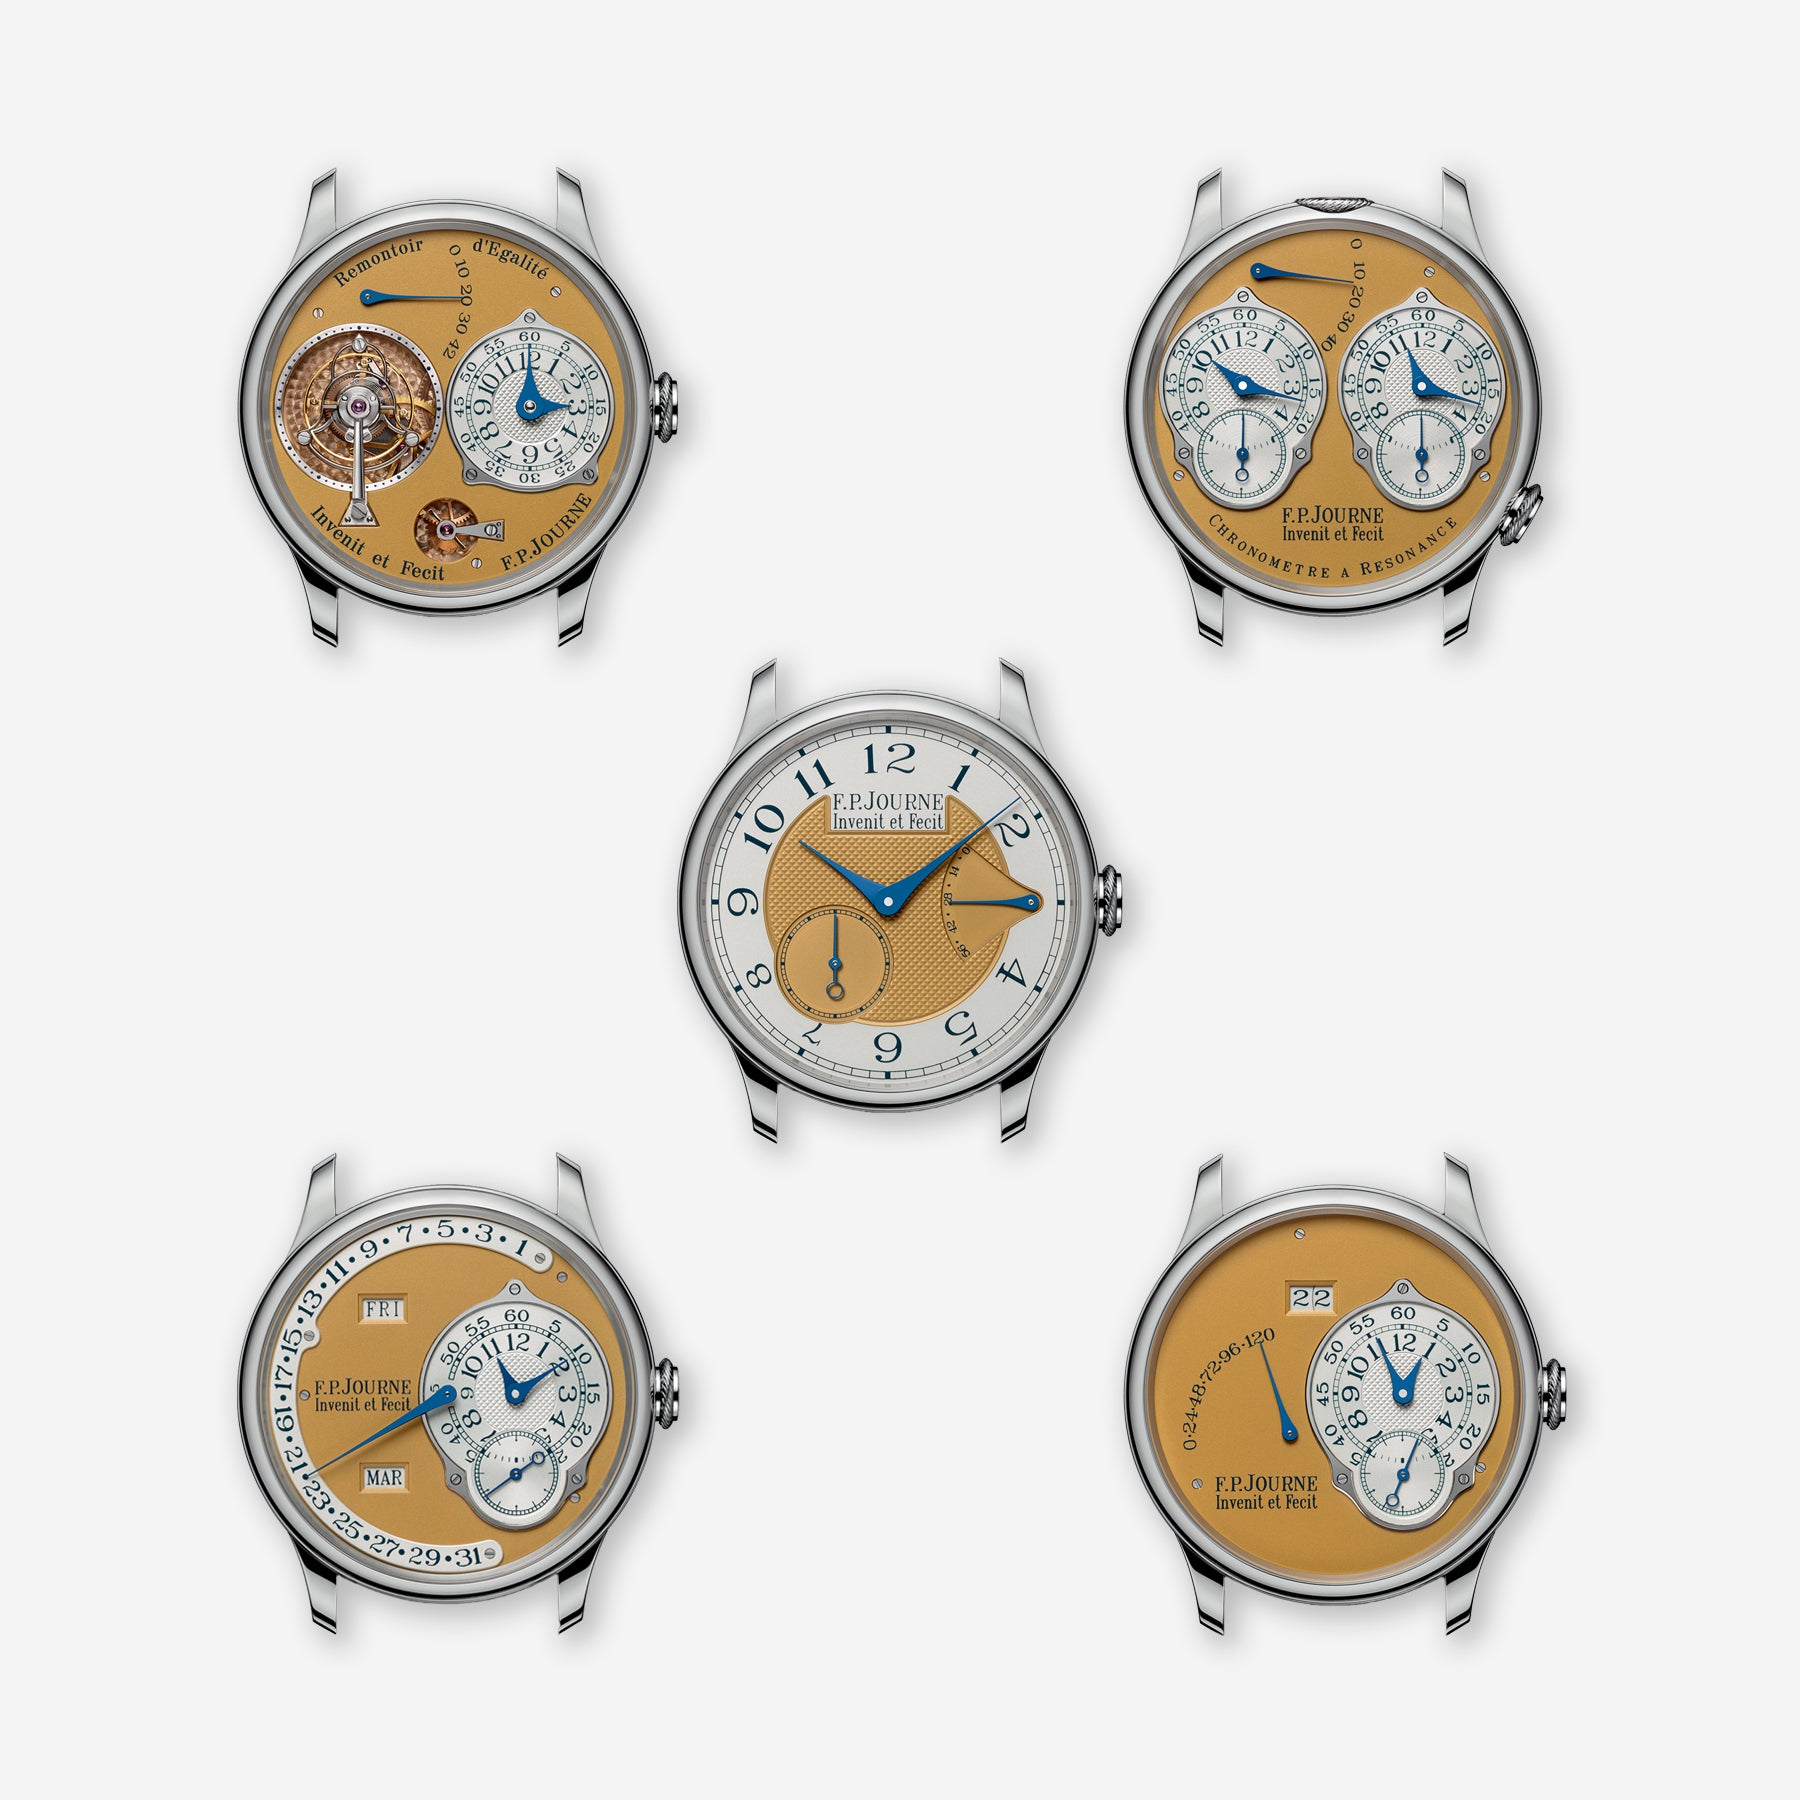 F.P. Journe limited edition of steel set of watches in a grid